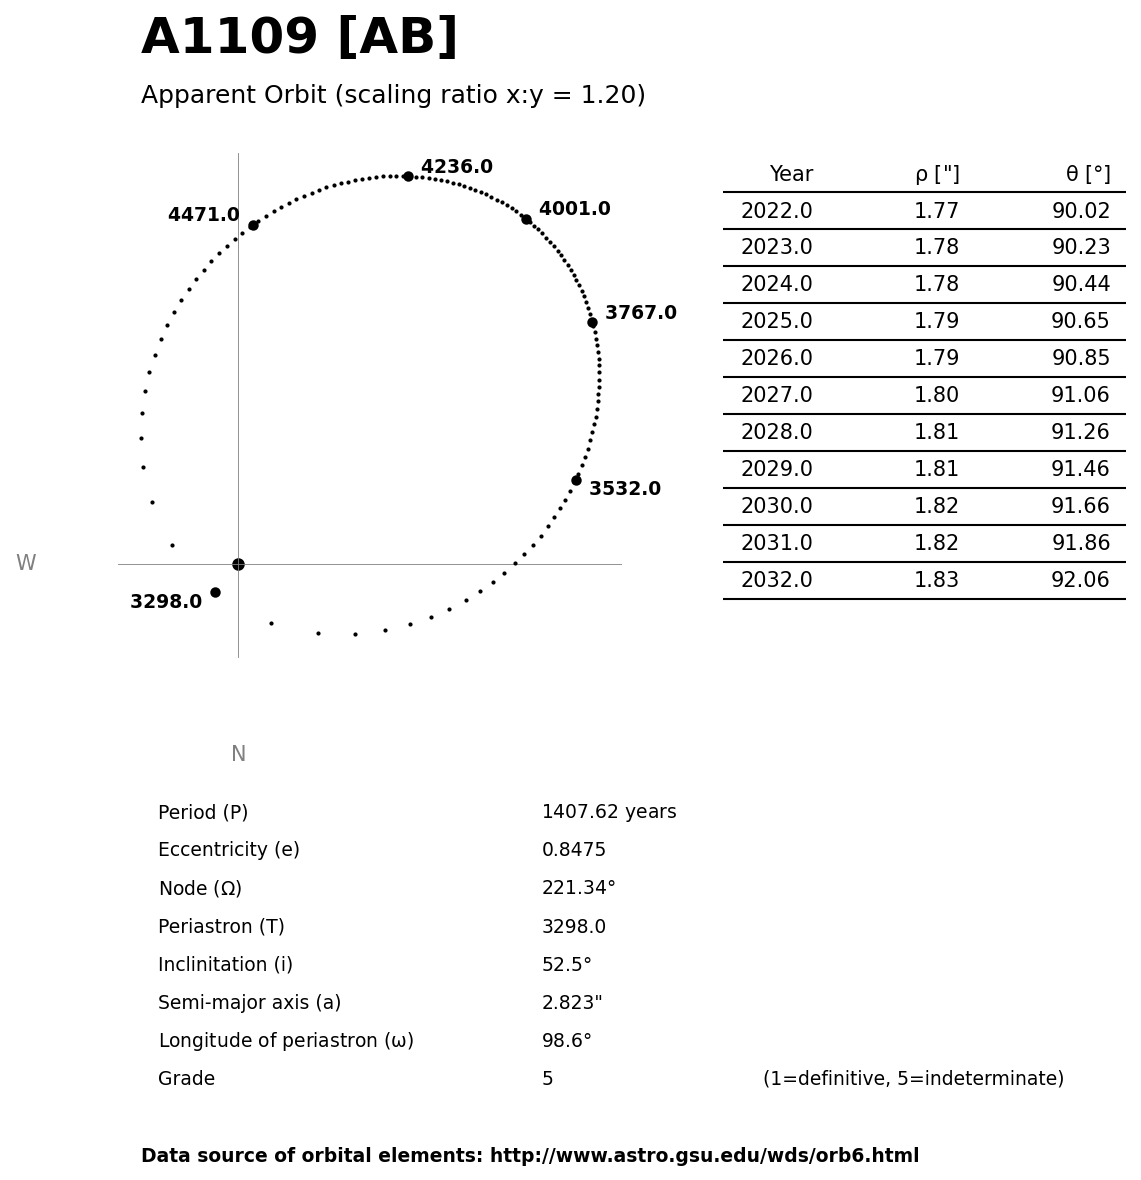 ../images/binary-star-orbits/A1109-AB-orbit.jpg